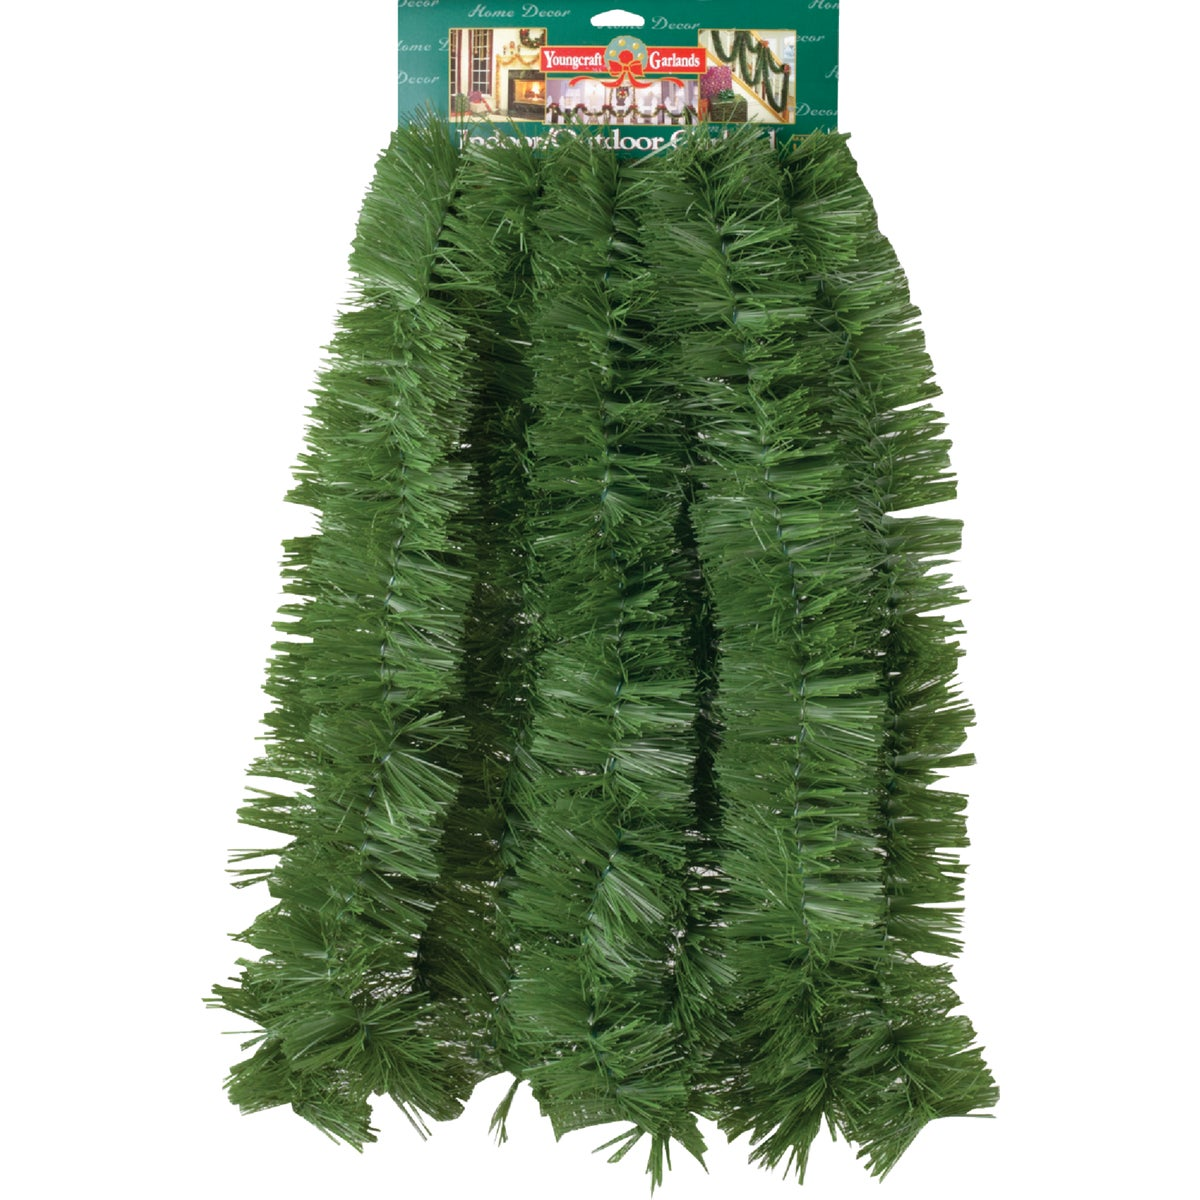 18' PINE GARLAND - 1035186-6 by F C Young & Co Inc